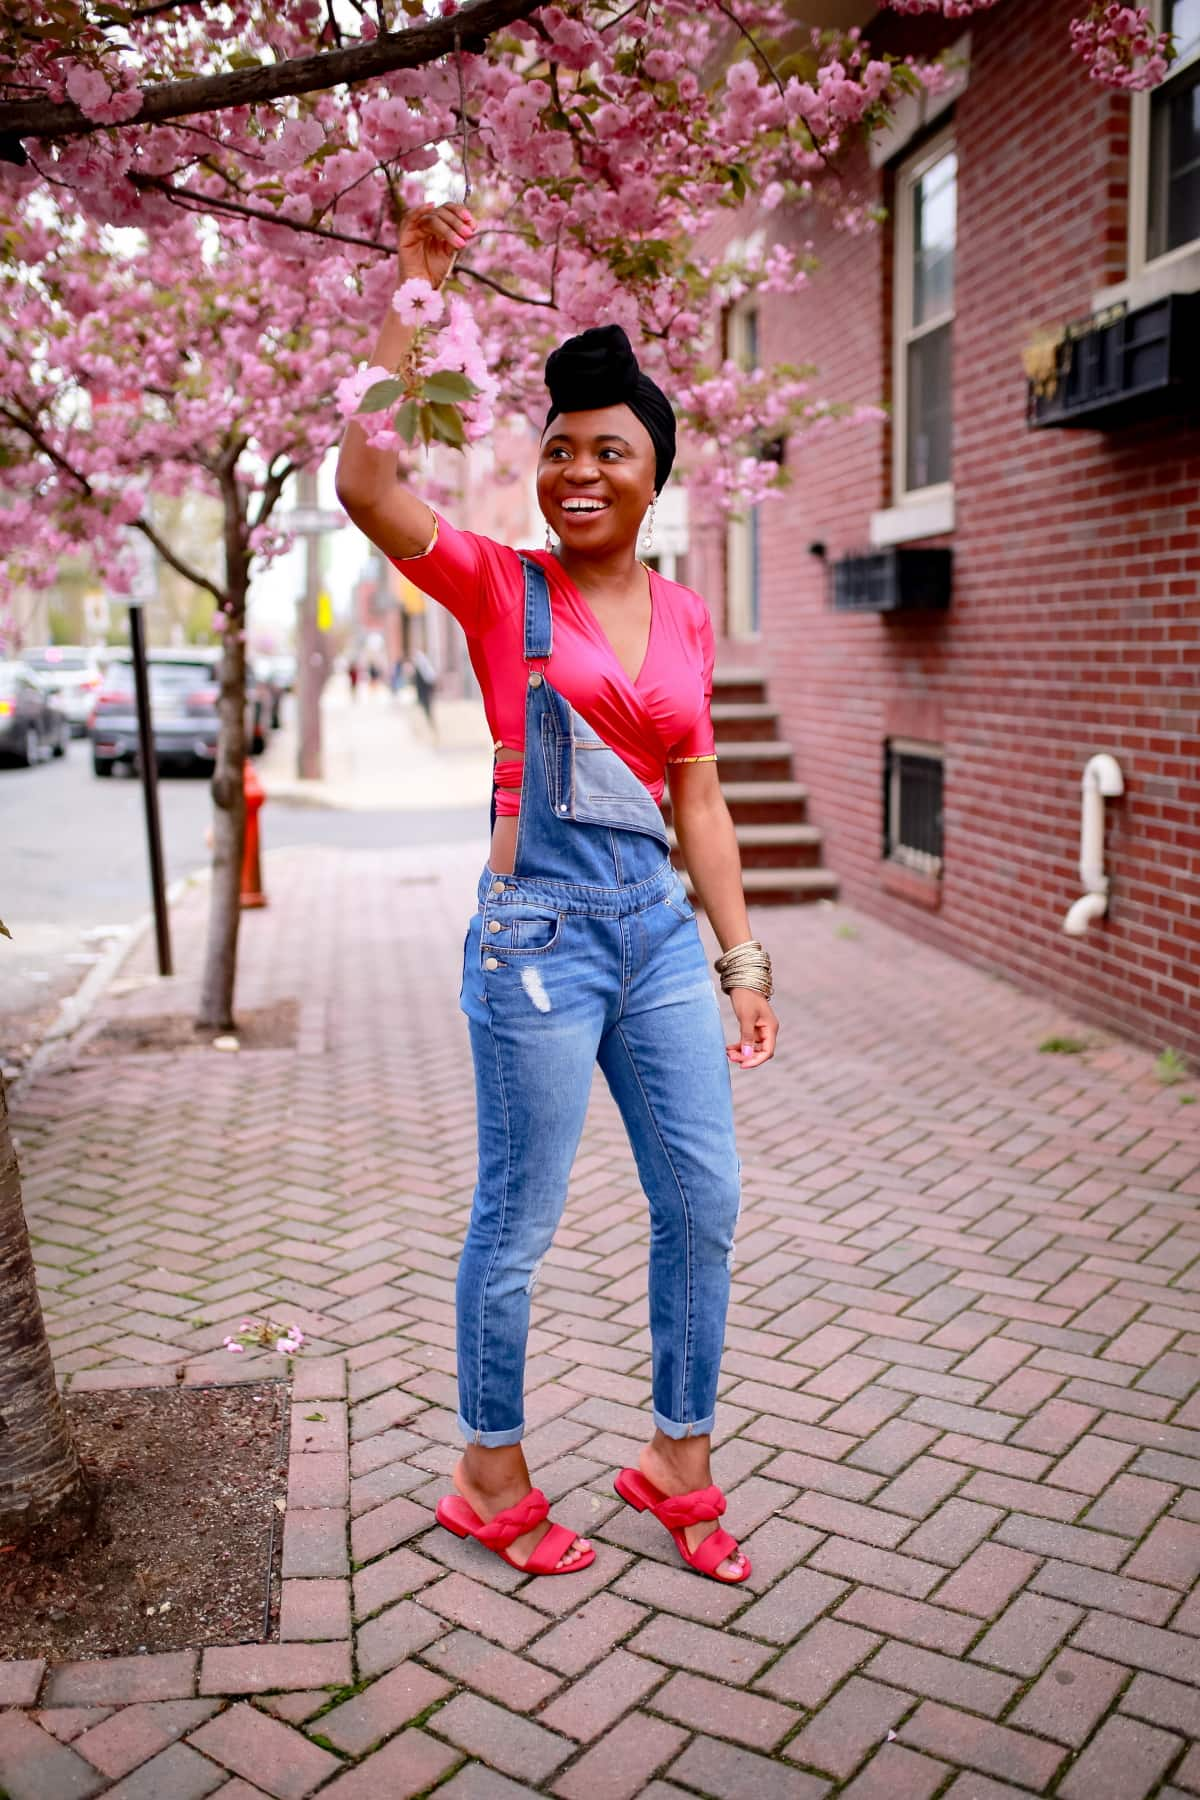 Cold shoulder outfits might be going out of style but denim overalls are a hit each and every summer. Before you throw in the towel, keep reading to find out how you can get your groove back on with a few fresh ways to style denim overalls. #summeroutfits #trendyoutfits